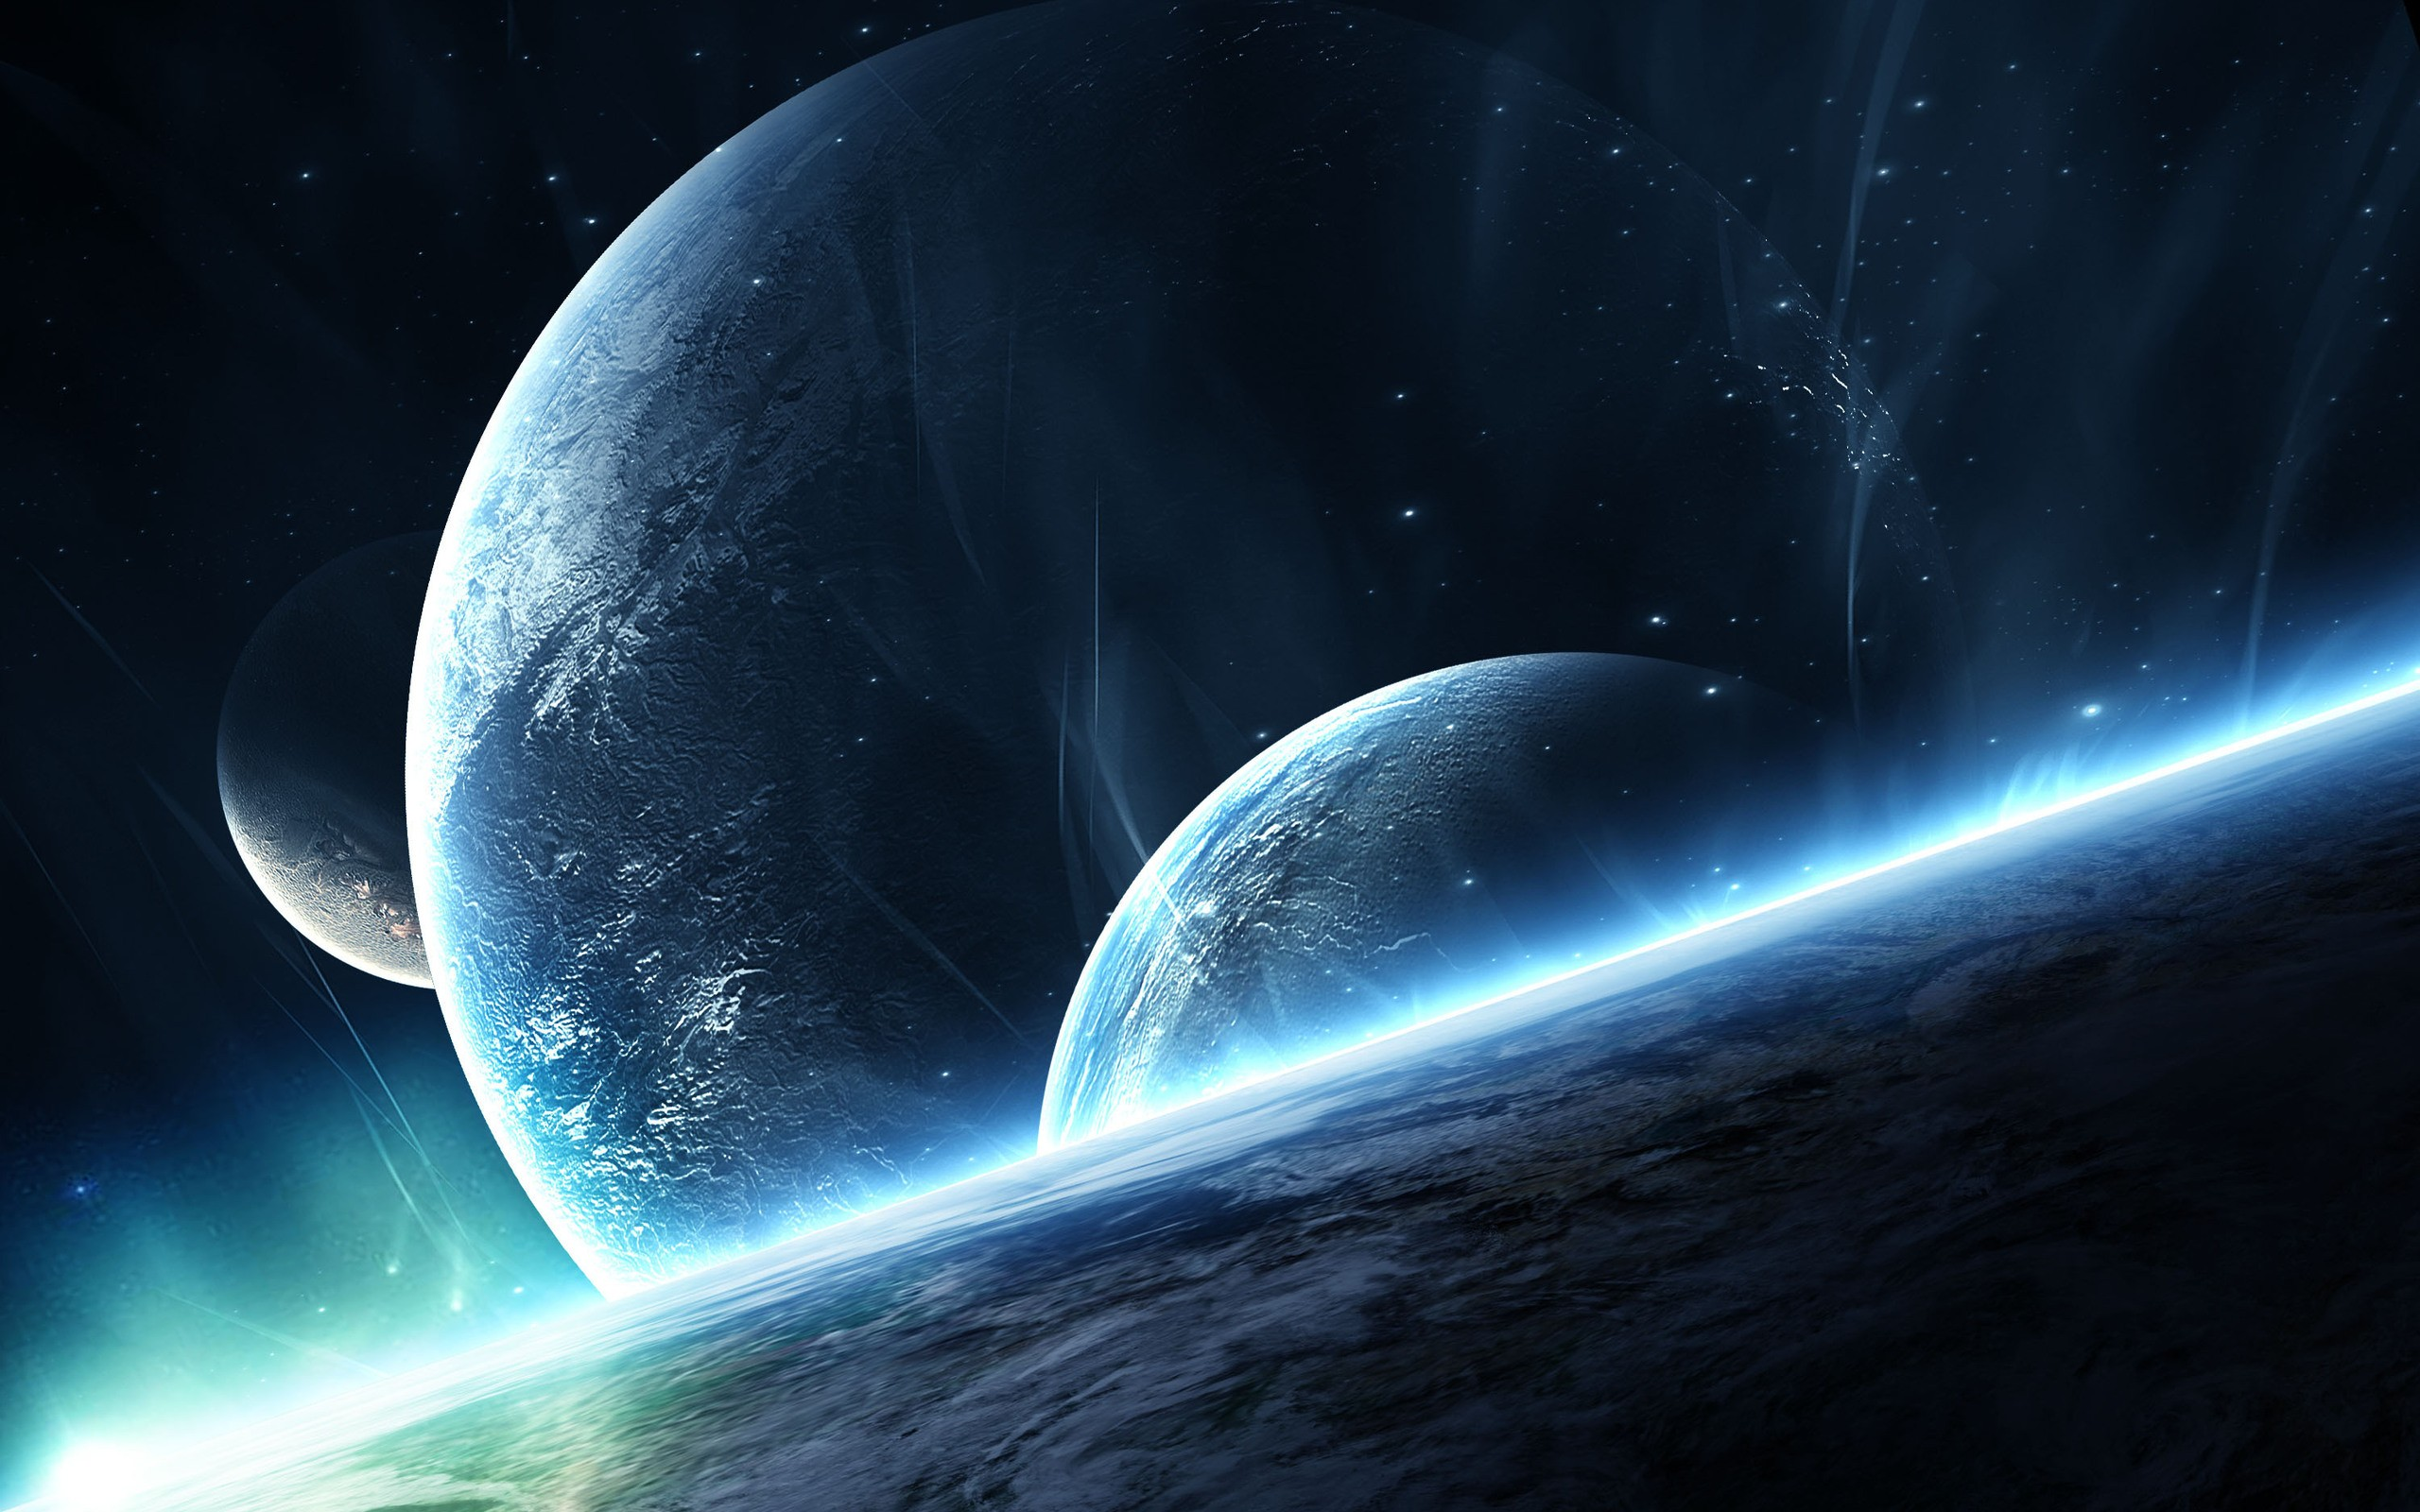 Outer space wallpaper 4358 2560x1600 px for Outer space design wallpaper